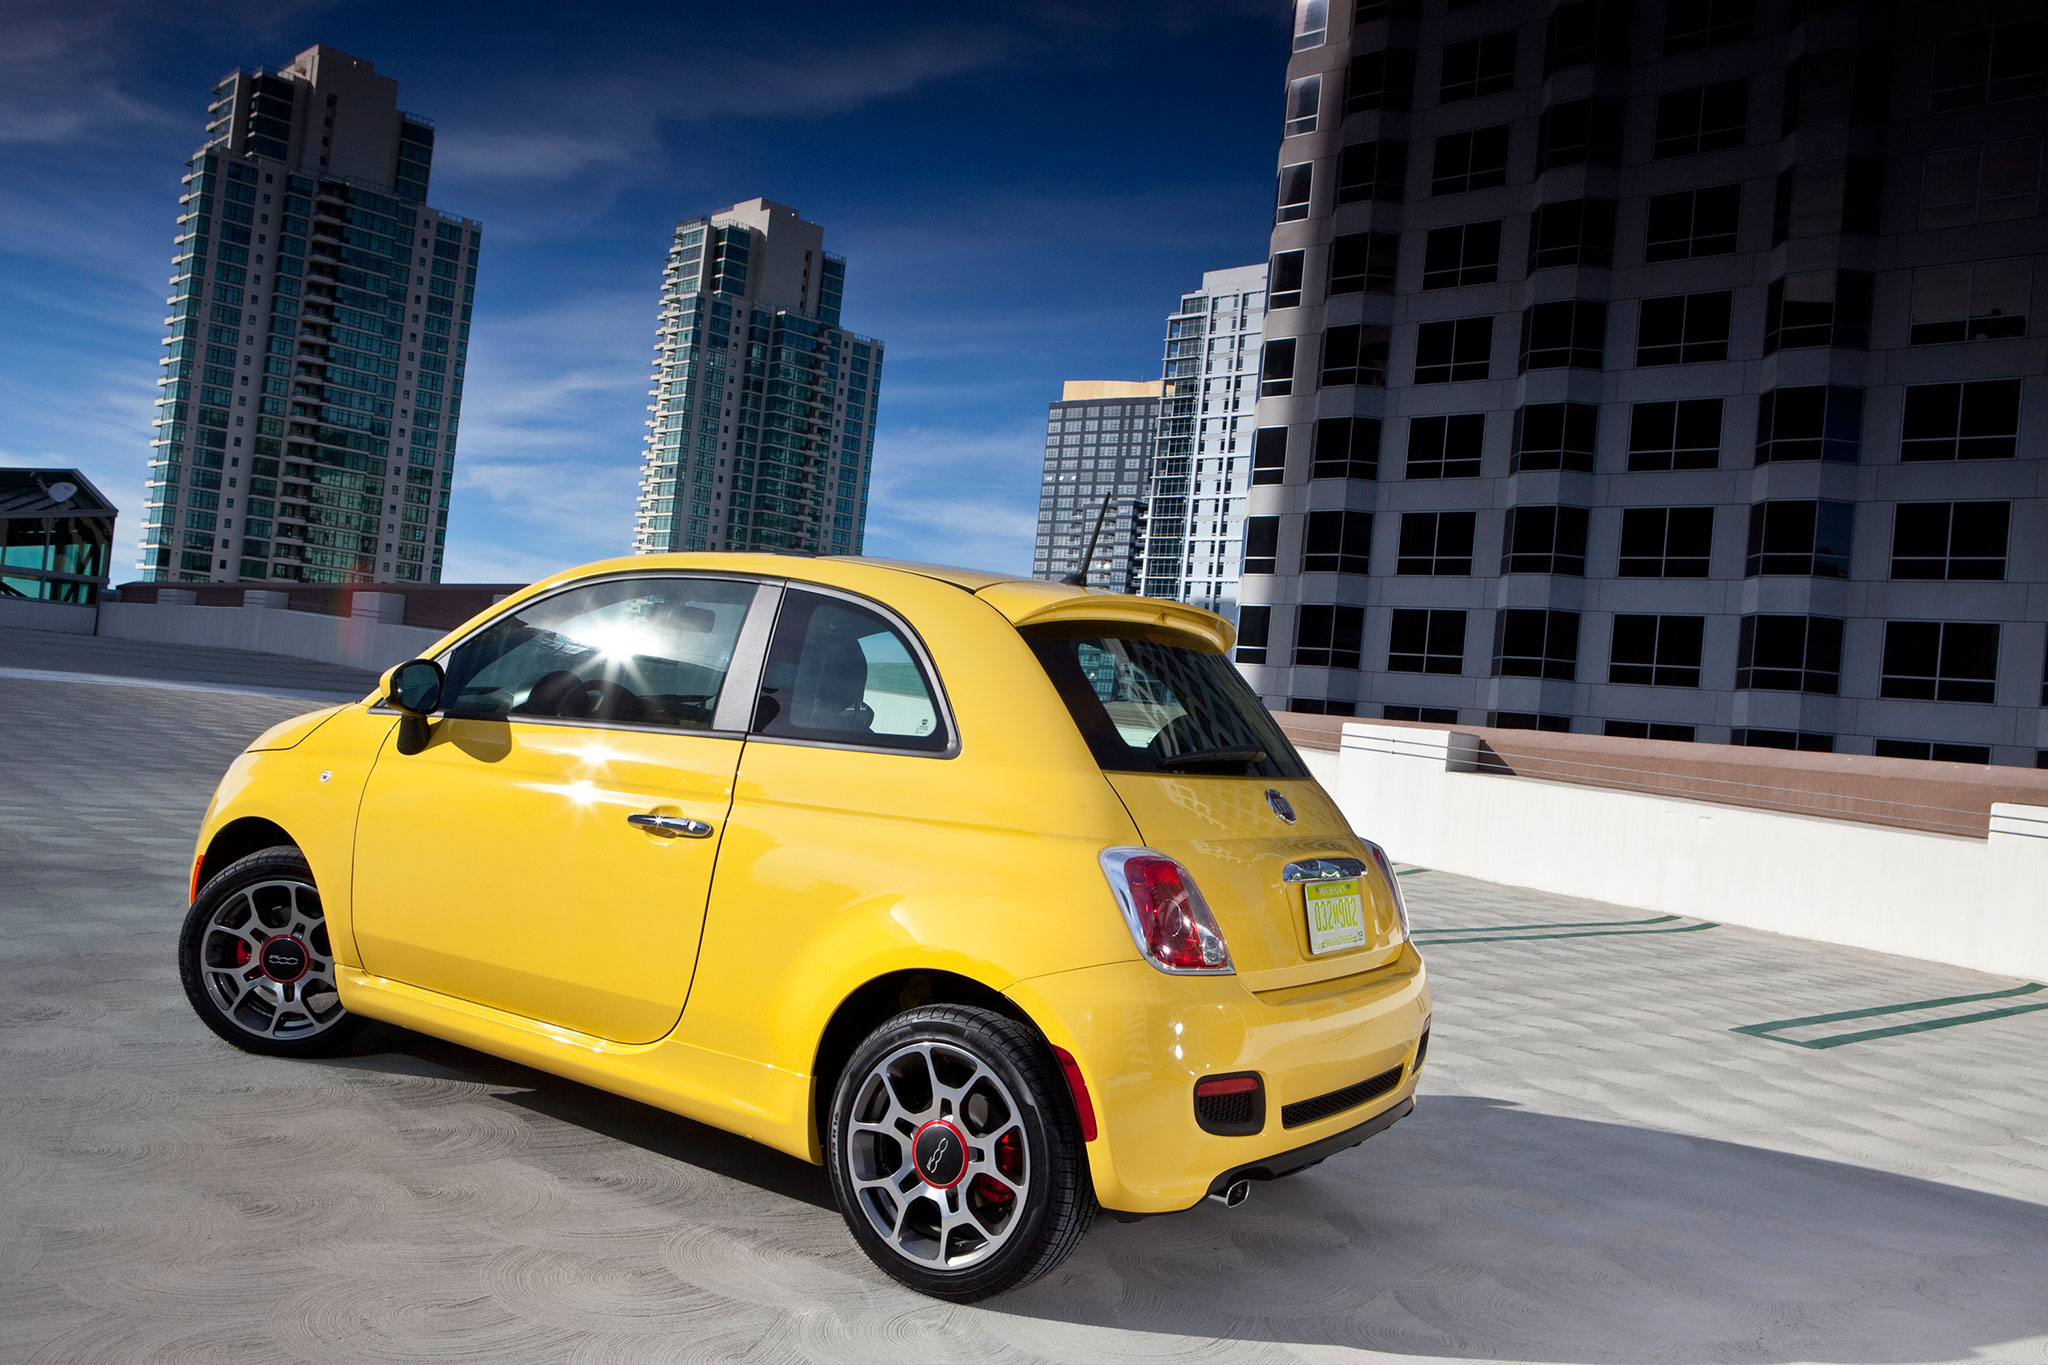 2014 fiat 500 1957 edition debuts at 2013 los angeles auto show